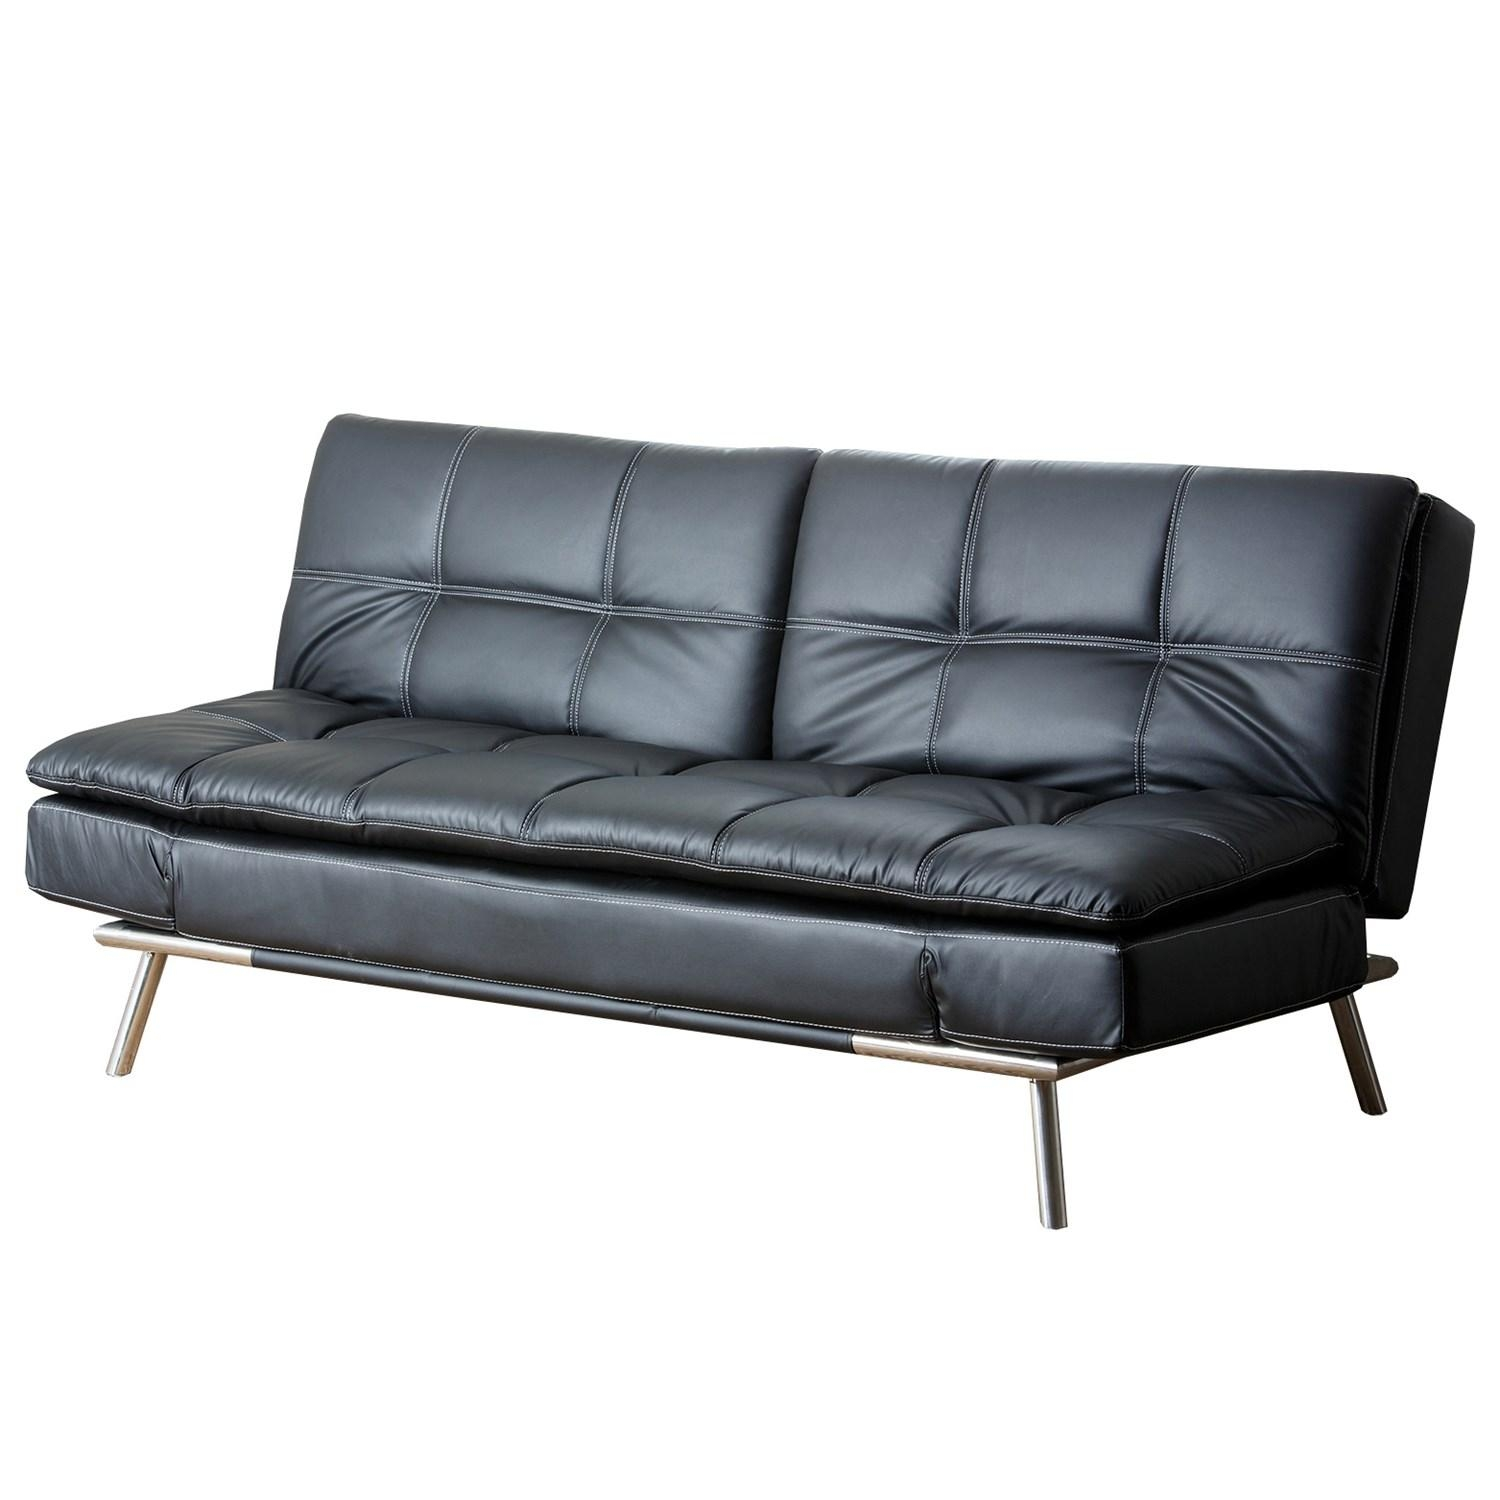 Abbyson Living Yg F118 Blk Marquette Leather Euro Lounger Sofa Within Euro Loungers (Image 2 of 20)